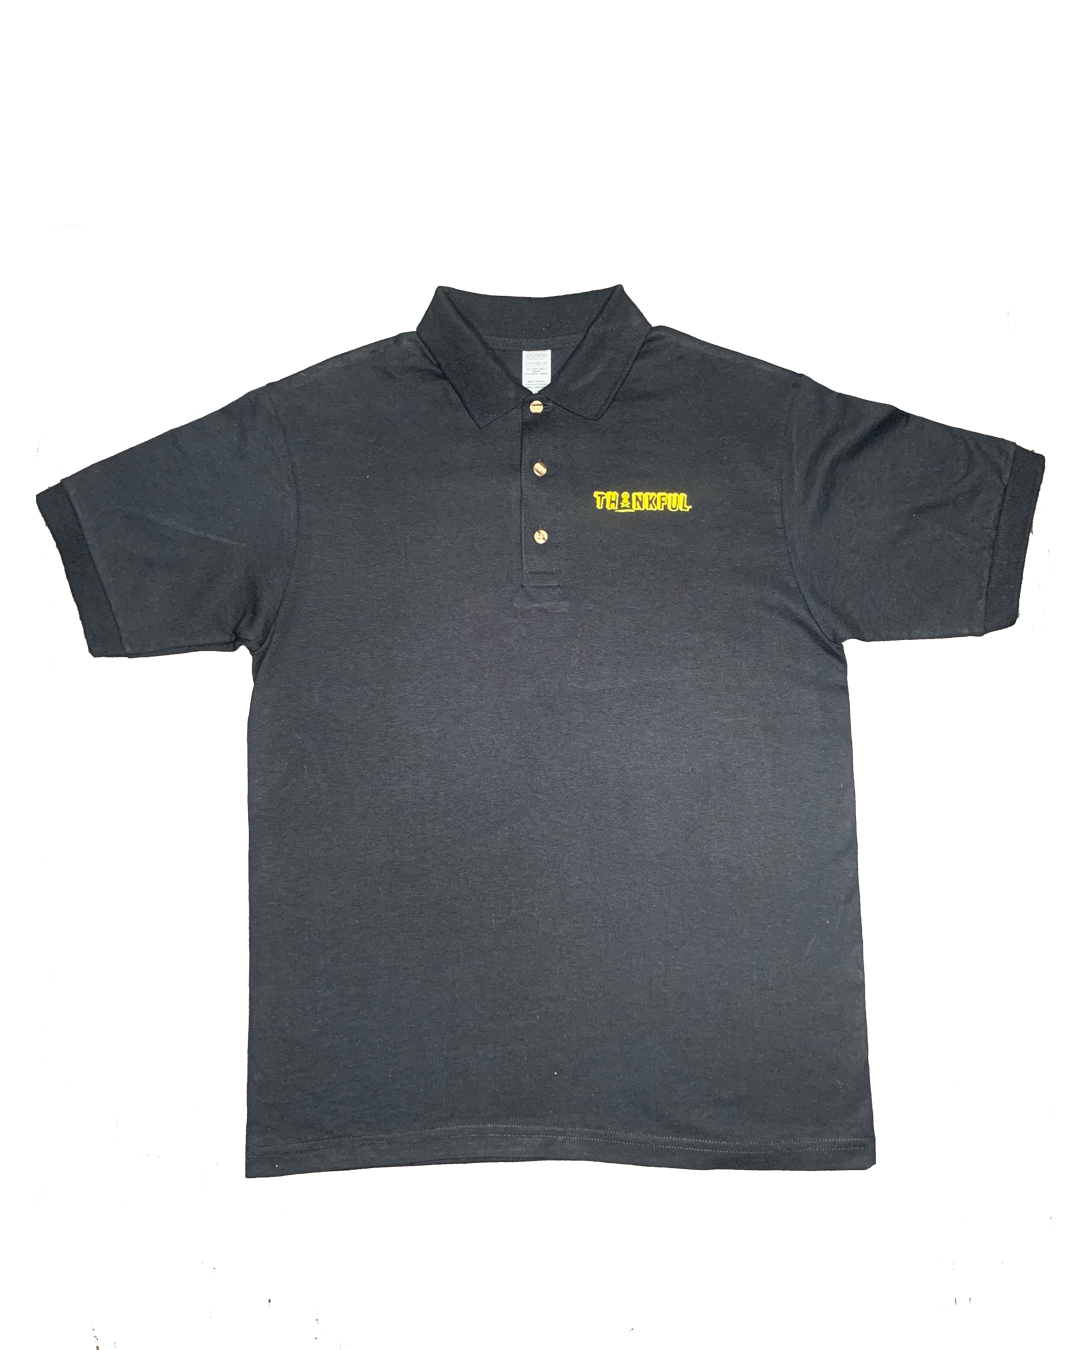 Thankful Polo Tee